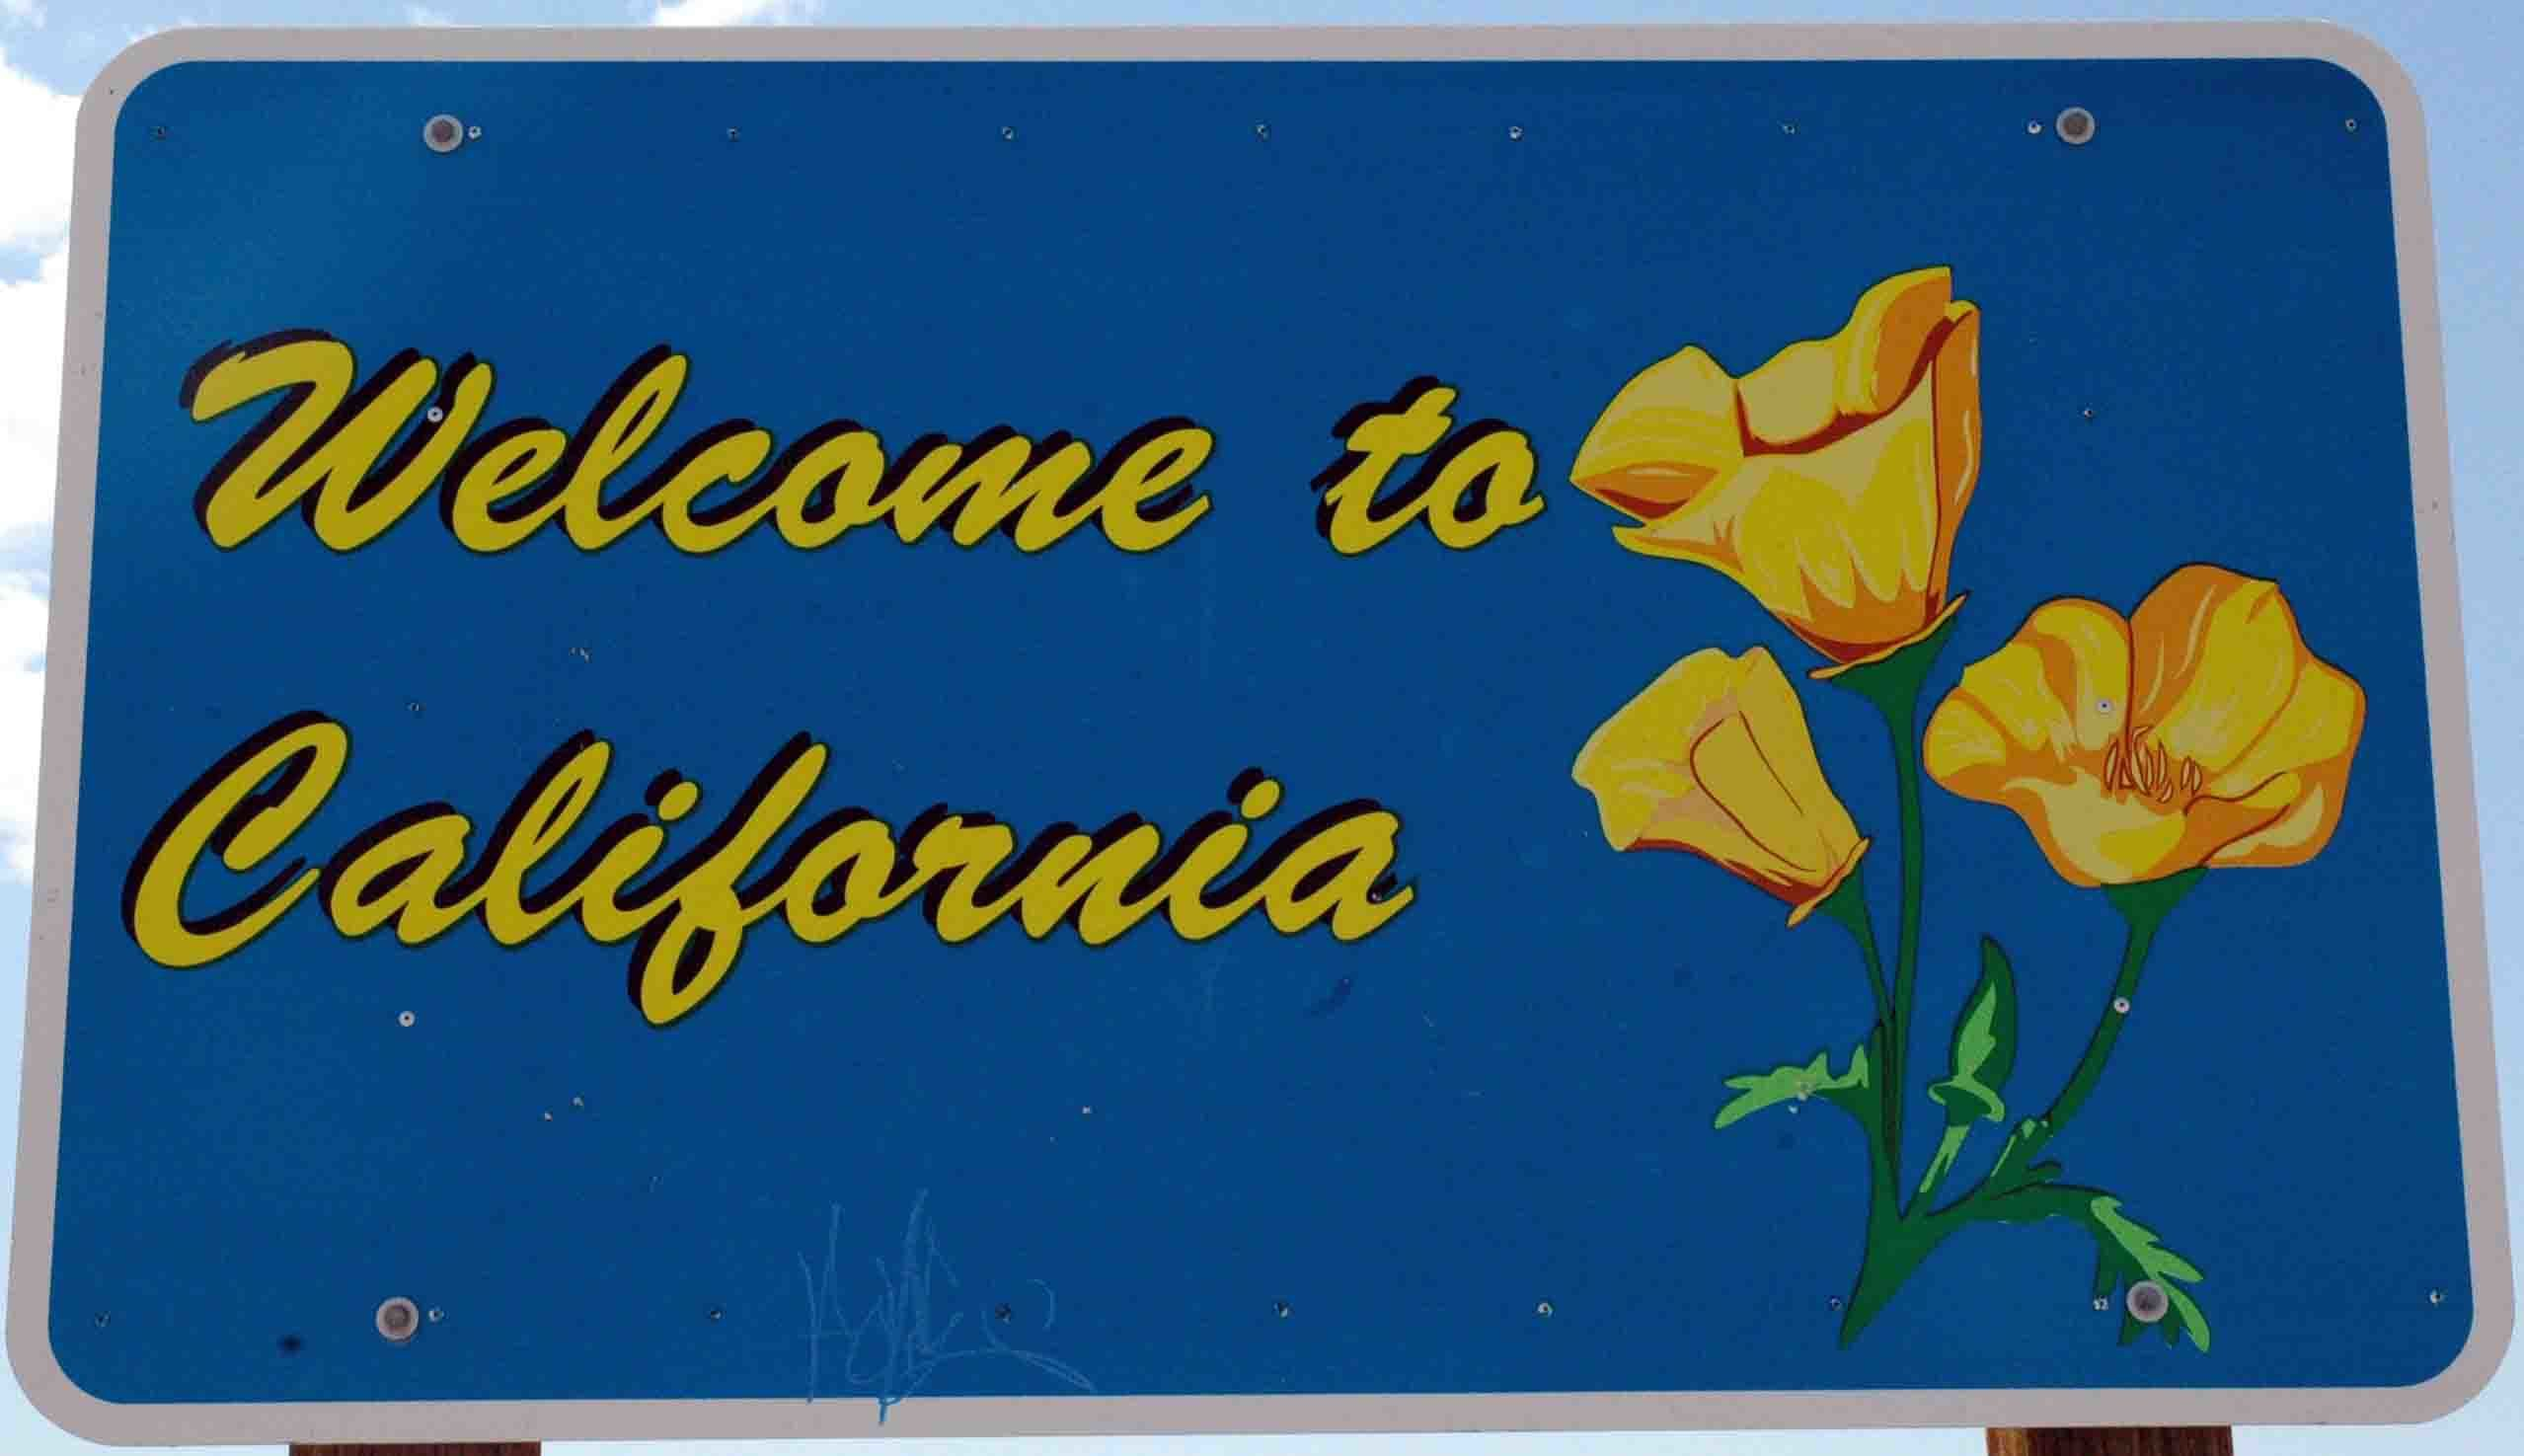 Welcome to California high HD Wallpaper